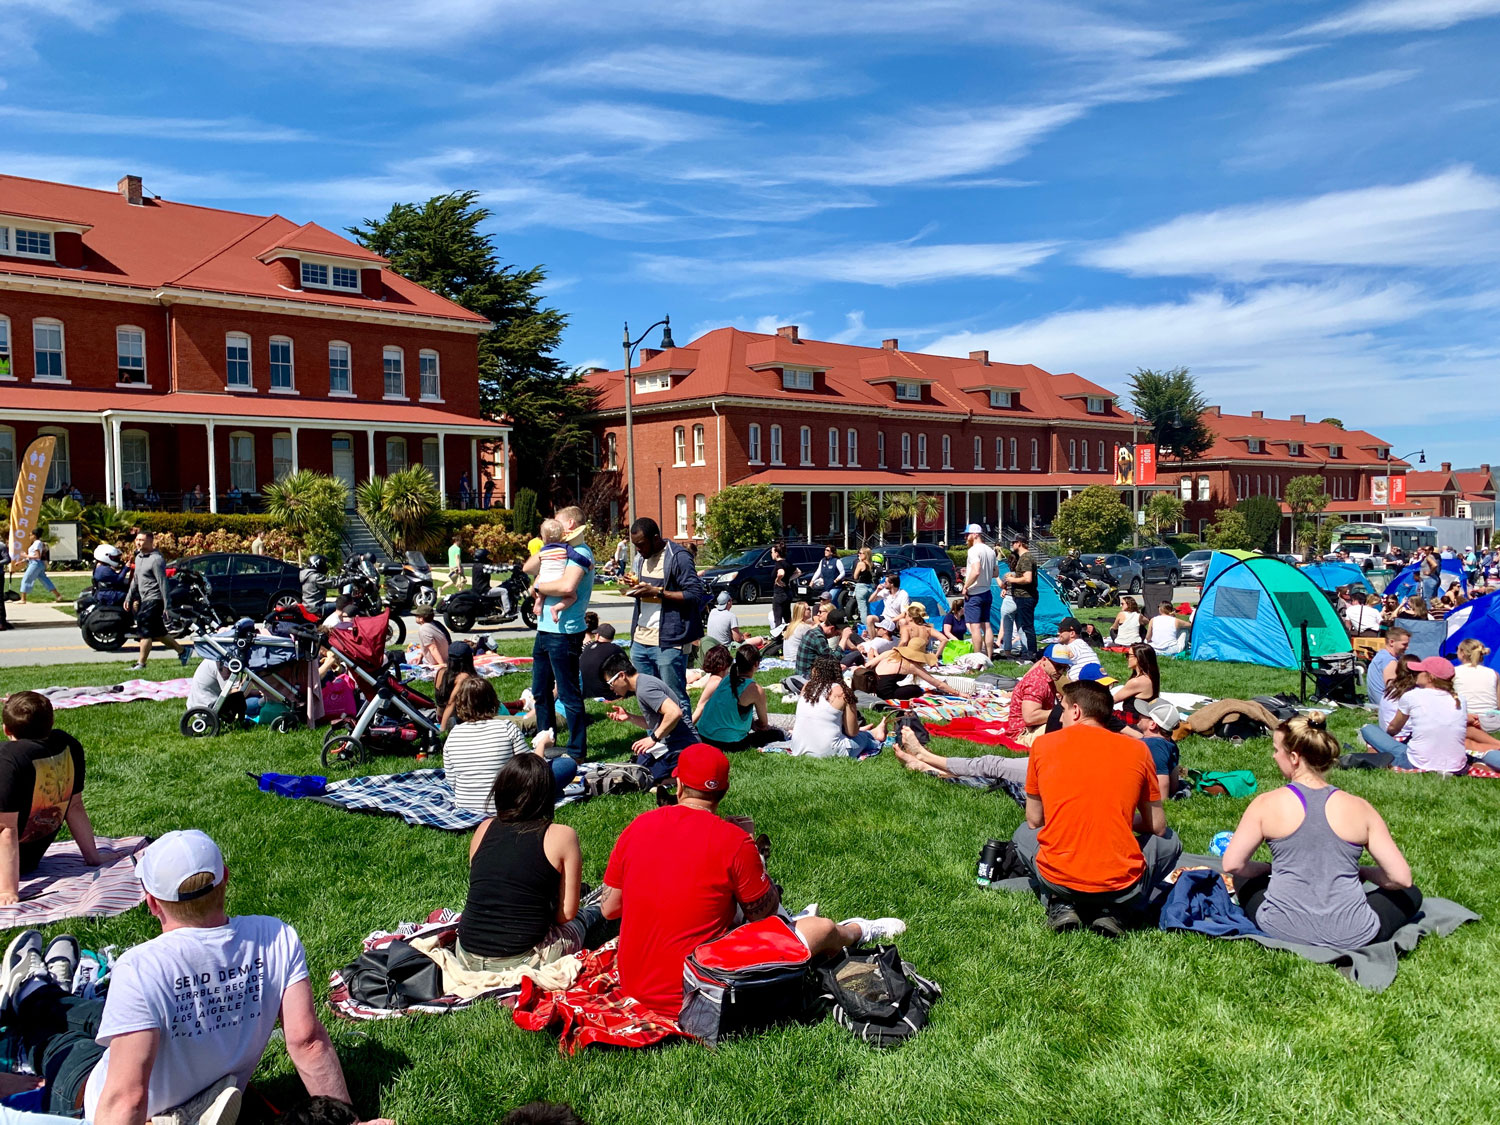 The crowd at the opening of Presidio Picnic (Photo and icon photo courtesy of CKO+)